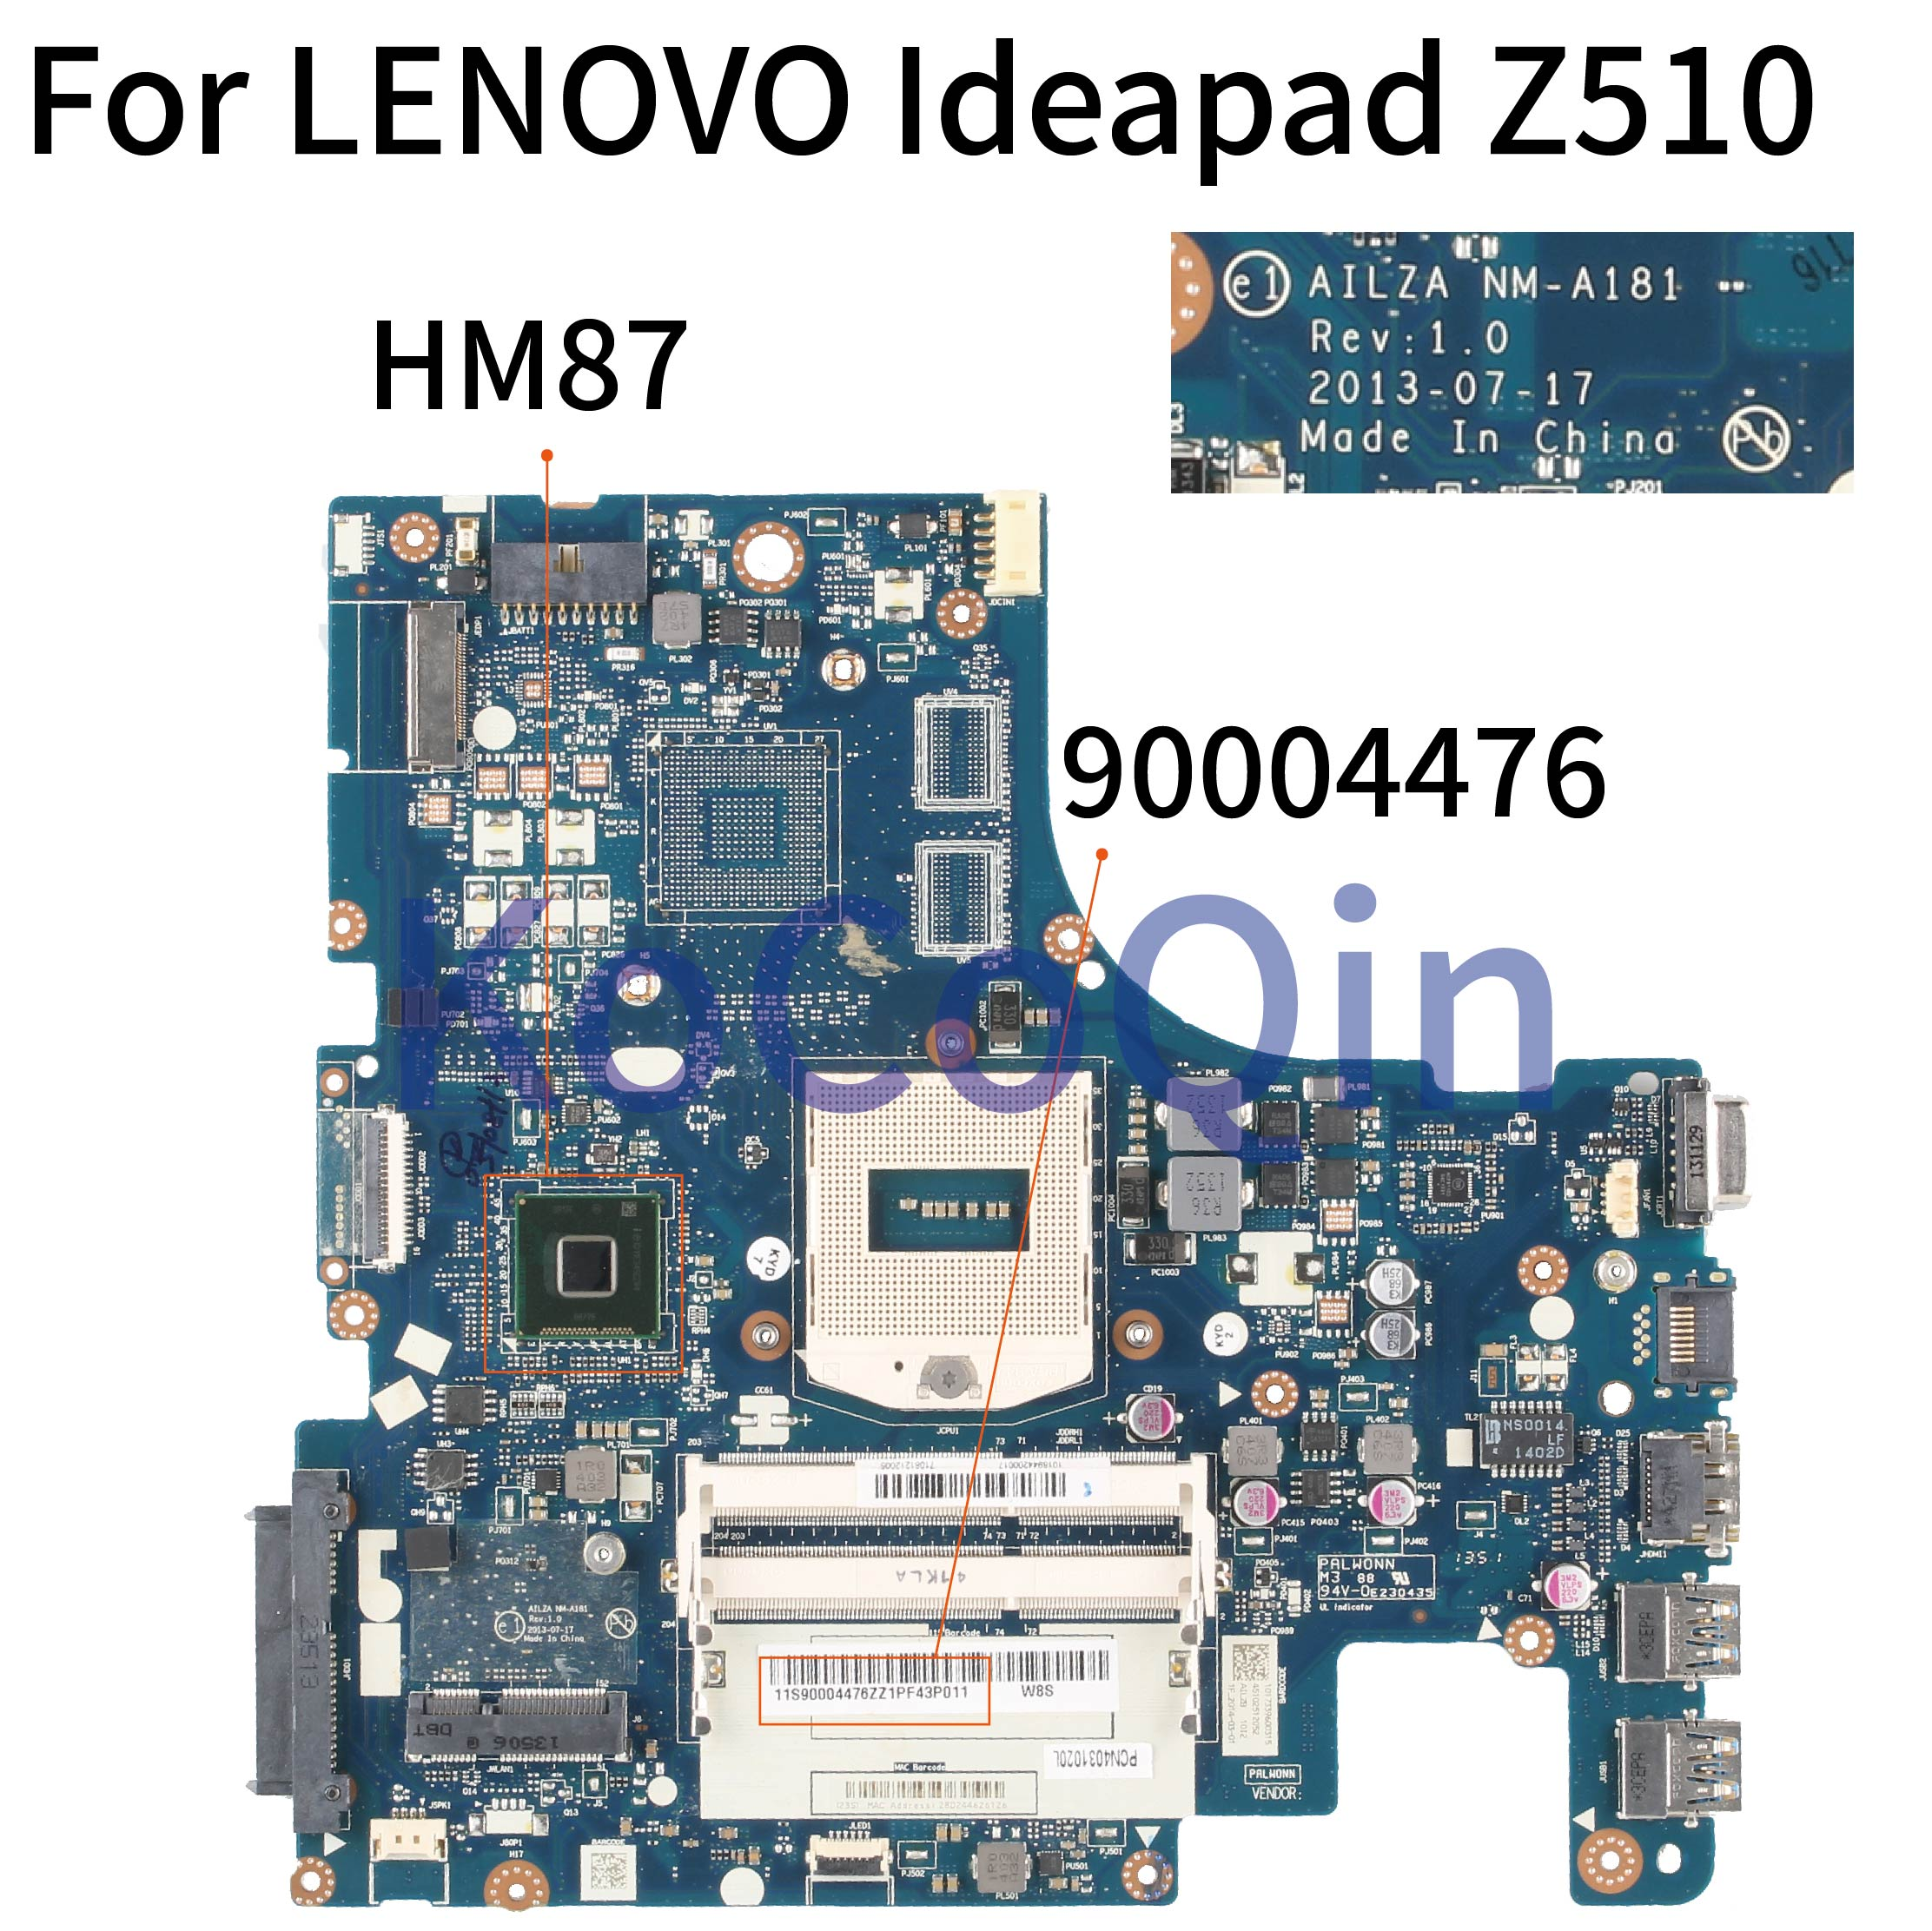 KoCoQin Laptop Motherboard For LENOVO Ideapad Z510 PGA947 Mainboard AILZA NM-A181 90004476 HM87 DDR3